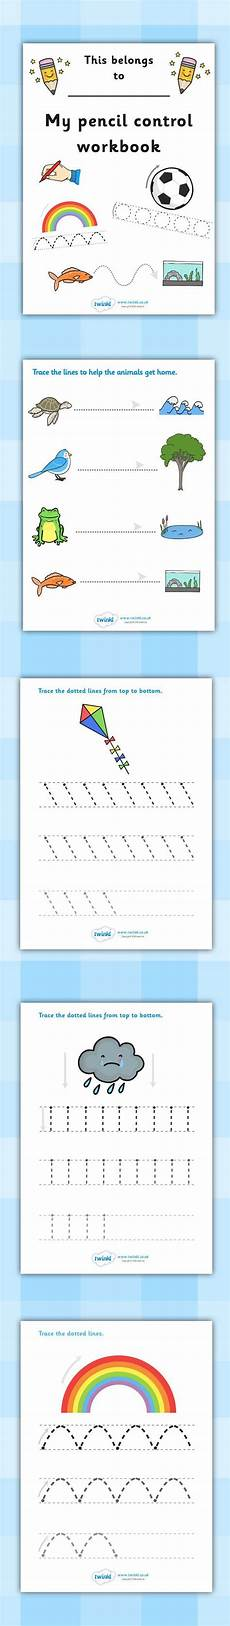 handwriting worksheets primary resources 21549 17 best images about education on motor preschool worksheets and preschool